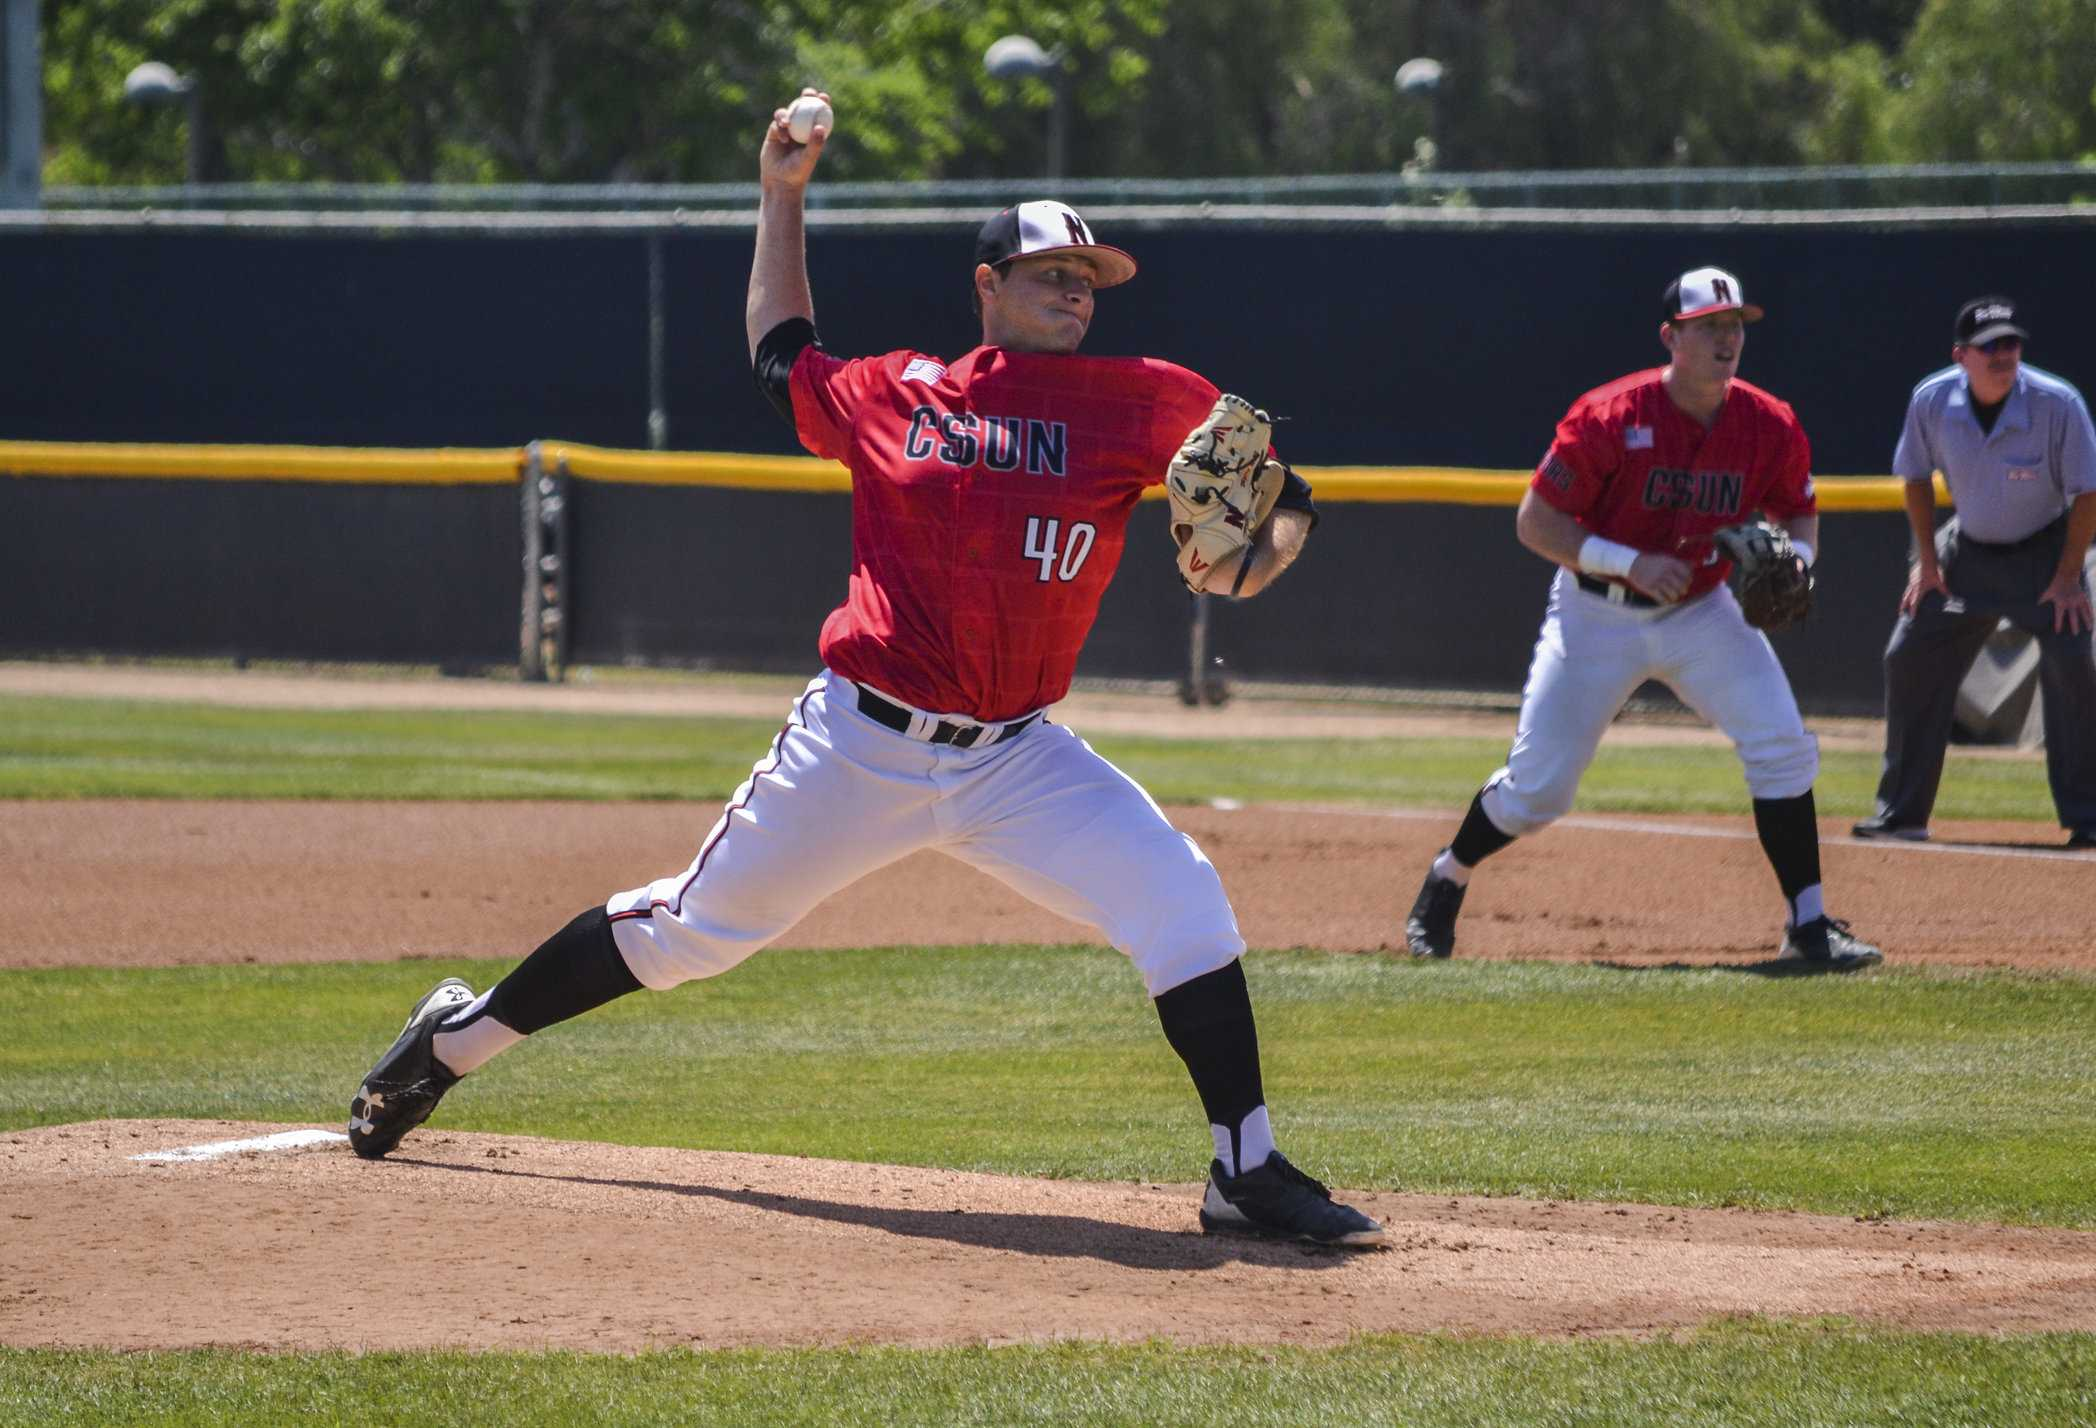 samuel myers pitches in the game against uc riverside